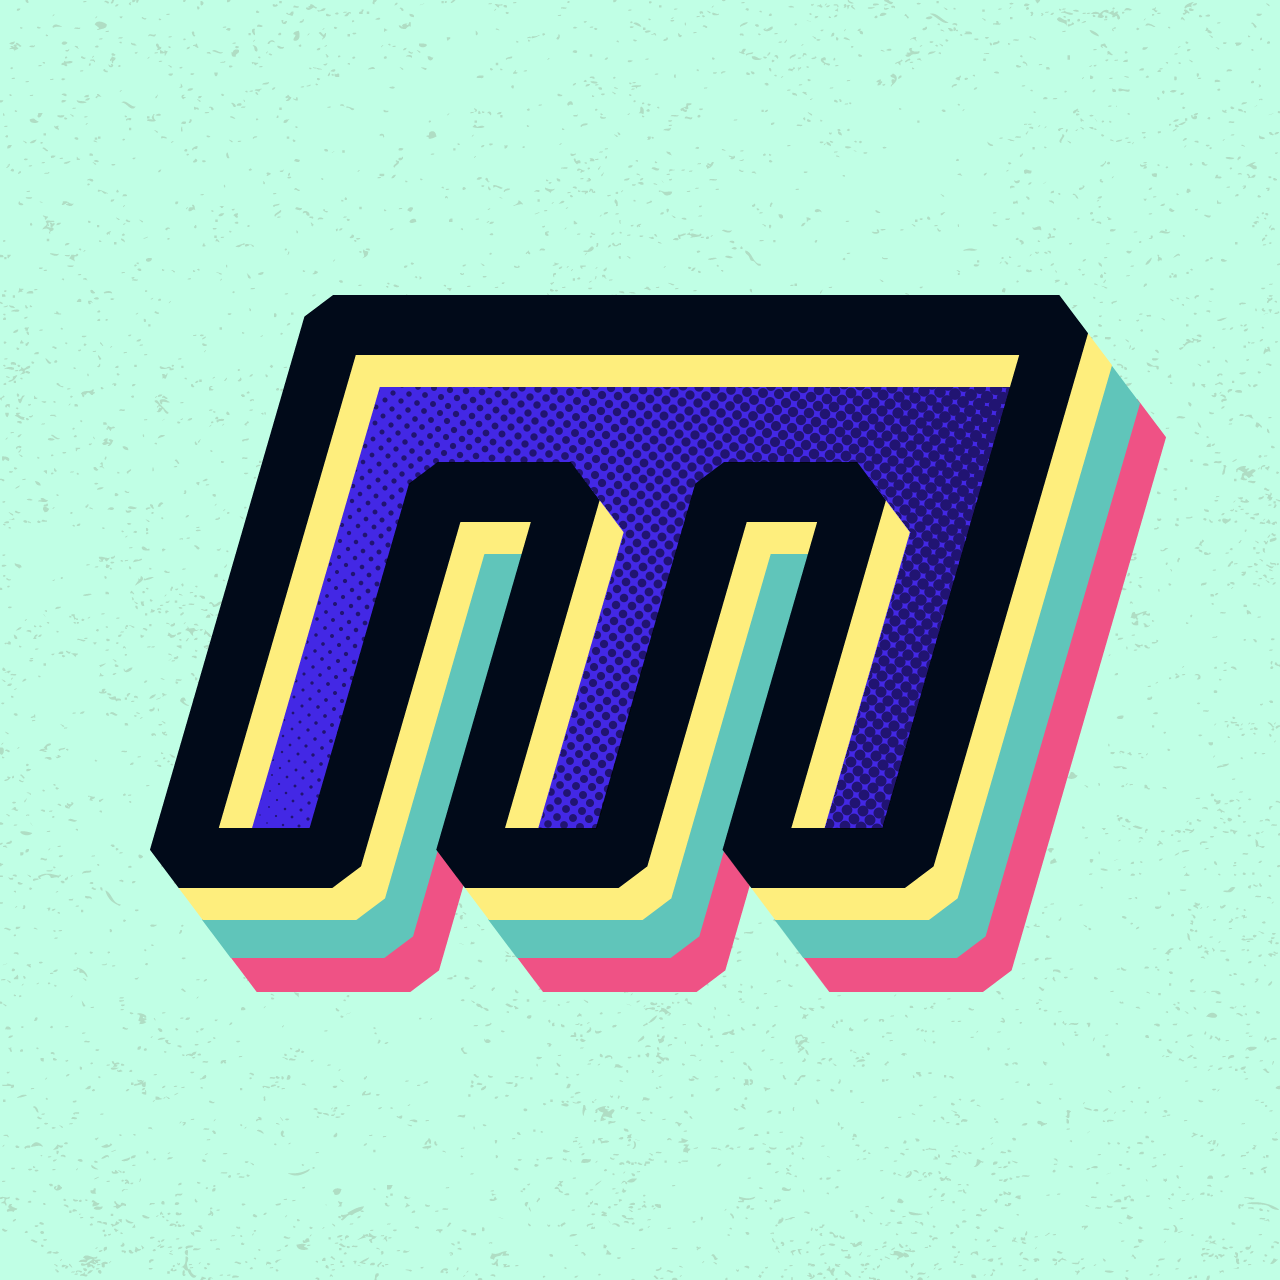 My M submission for 36 Days of Type